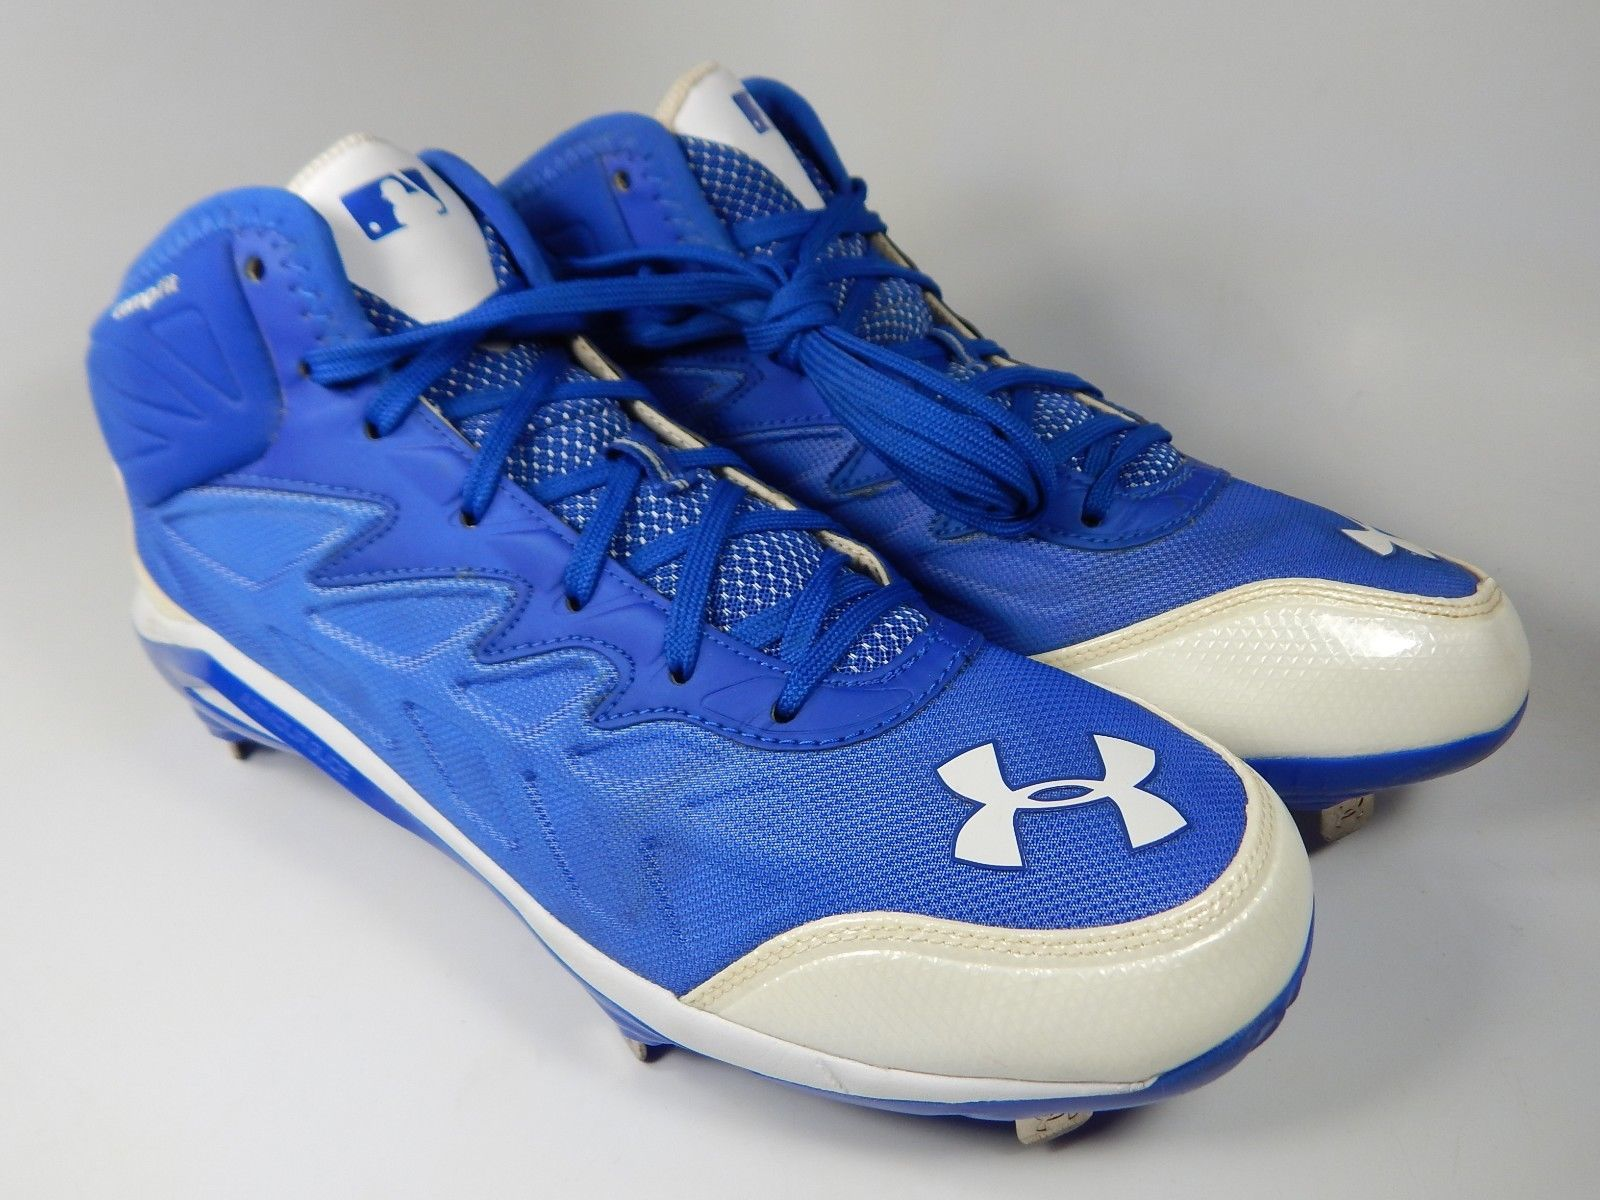 Under Armour Heater ST Mid Top Size 11 M EU 45 Metal Baseball Cleats 1248197-411